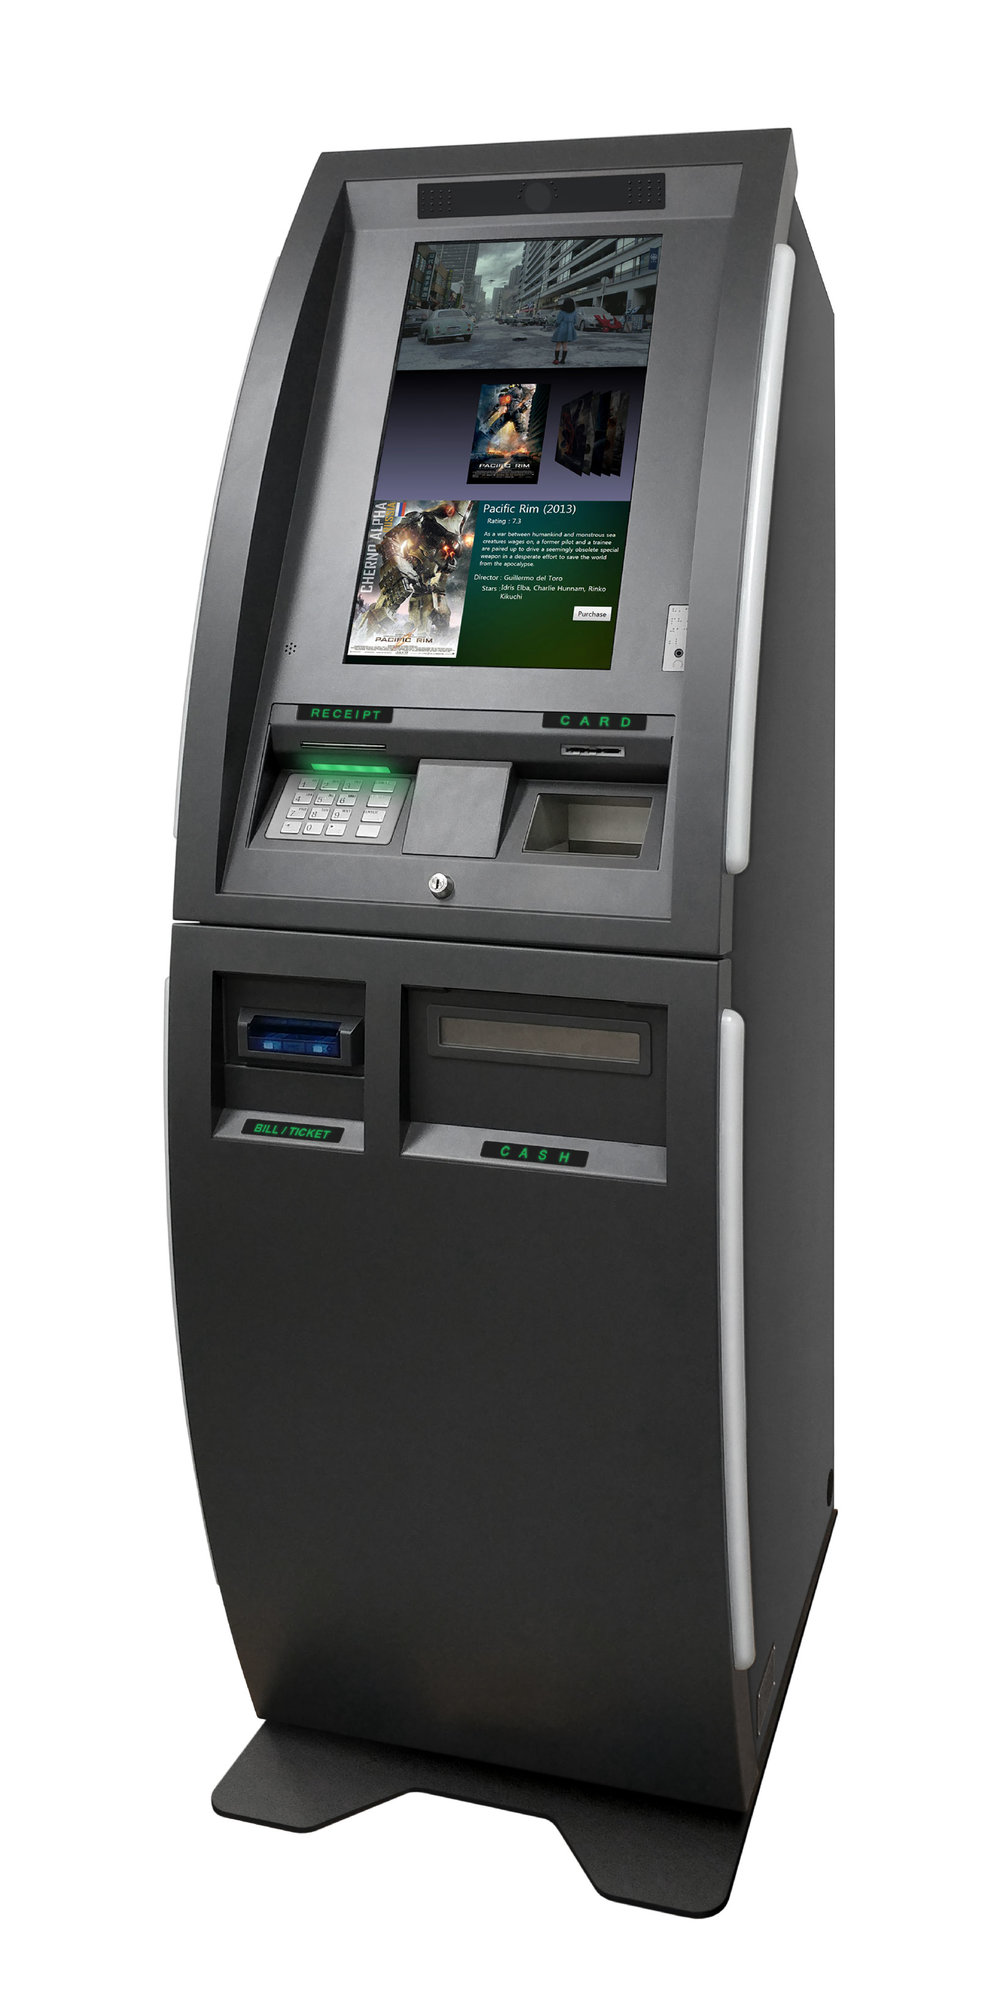 Genmega-Ldsystems-money-Transfer-ATM-UKXL-Right.jpg